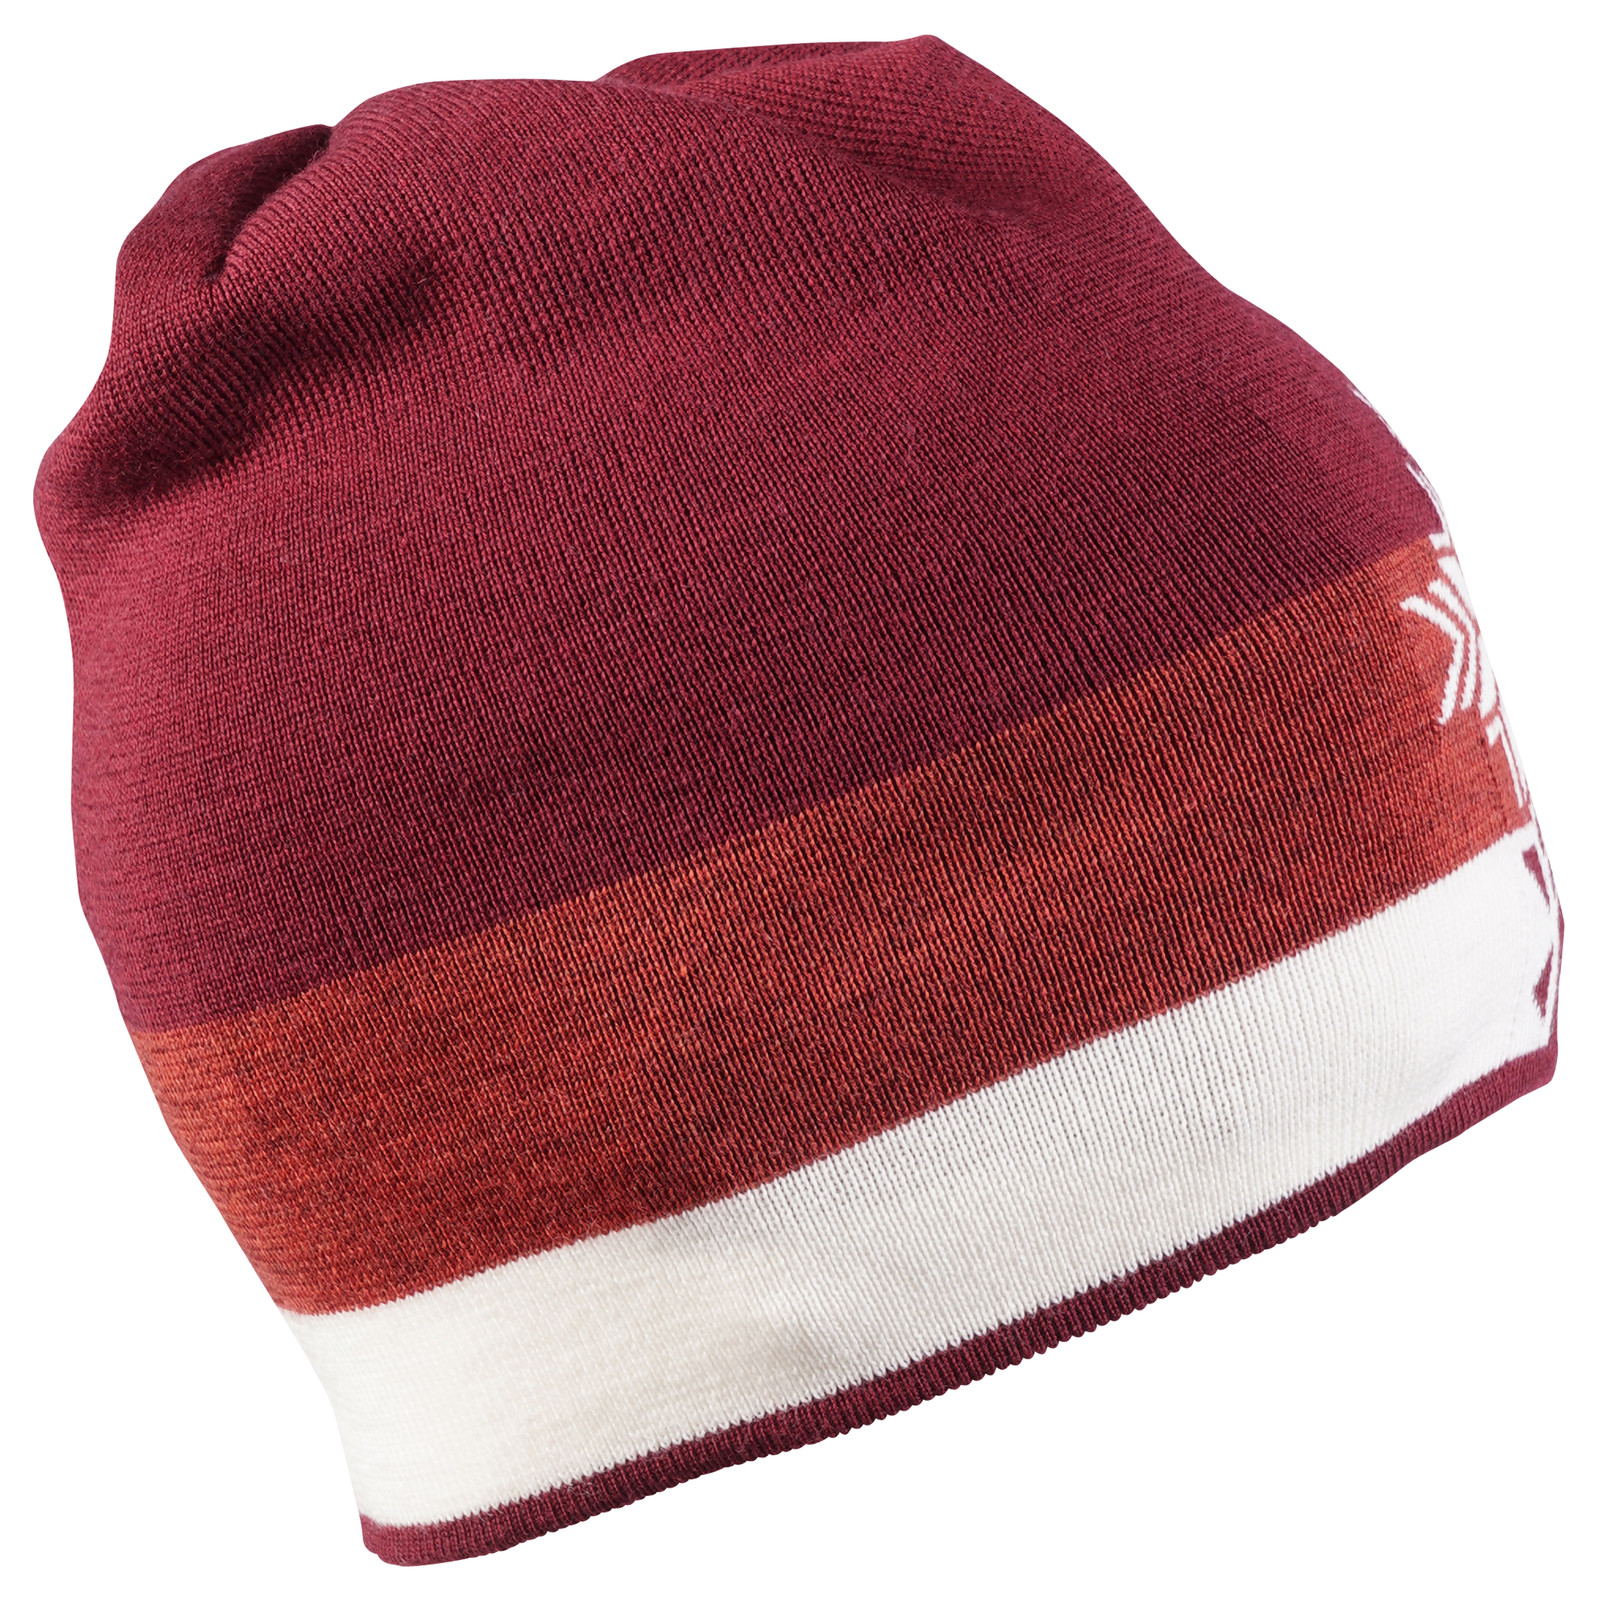 Dale of Norway Geilolia Hat - Ruby Mel/Rust Mel/Off White, 48261-V